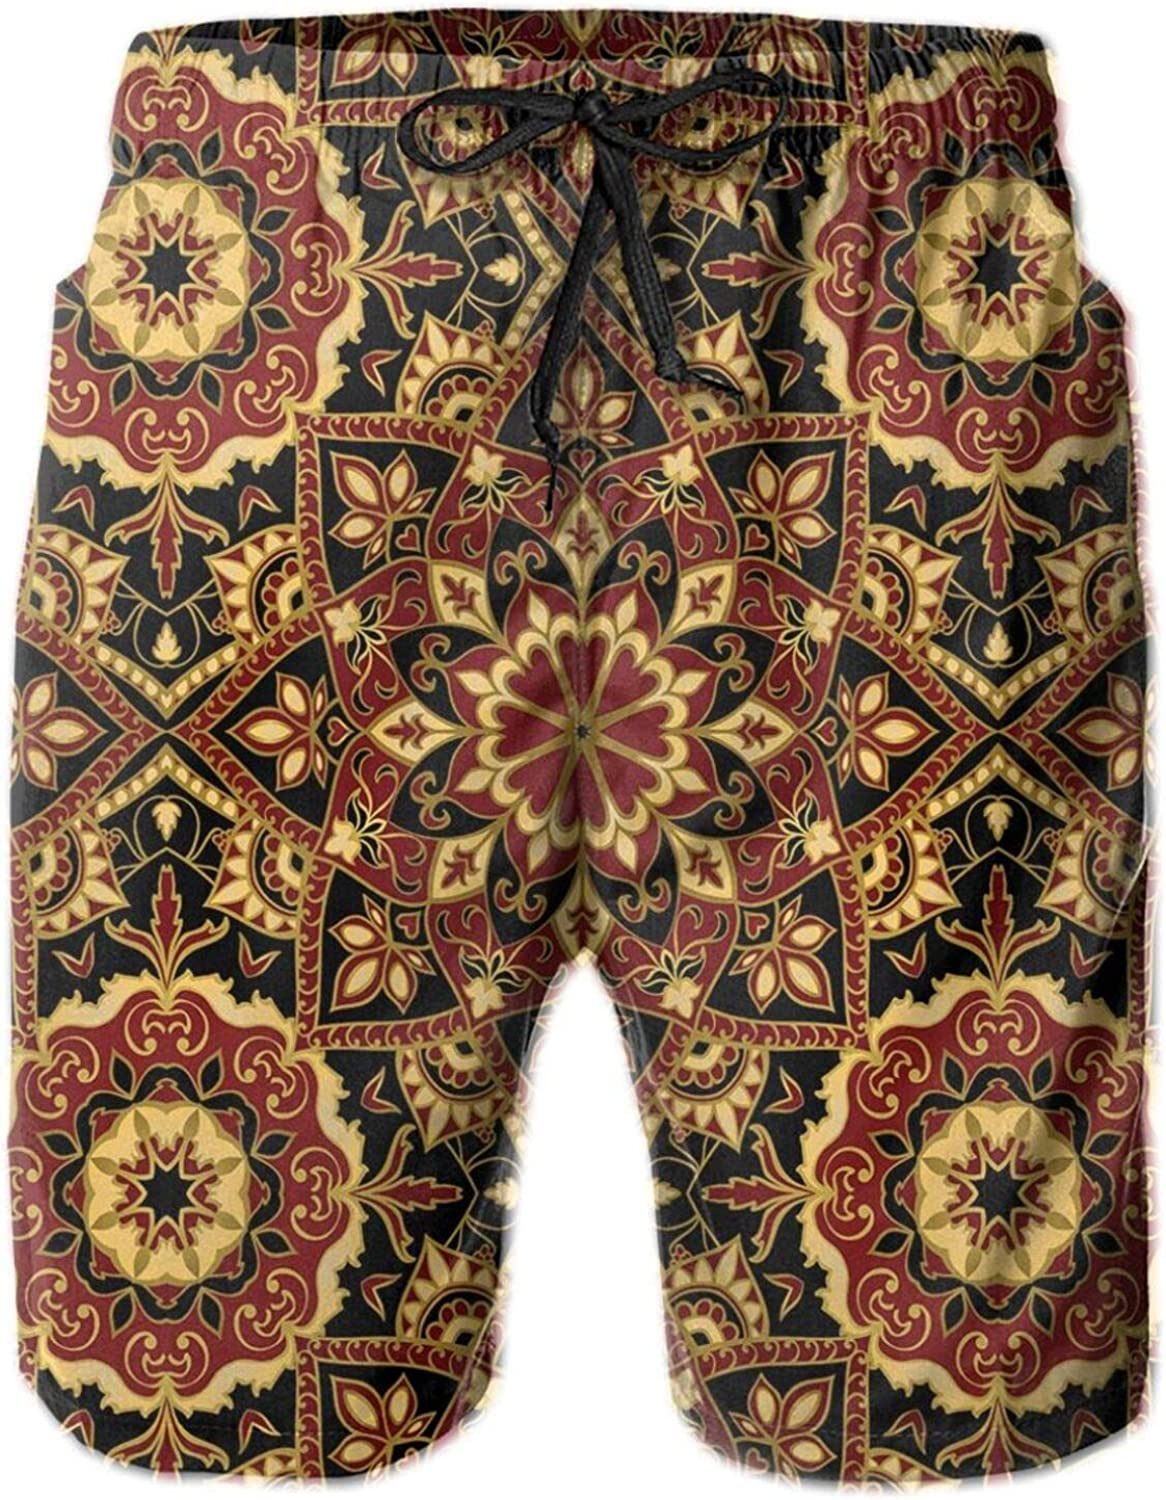 Byzantine Old Ornament in Dark Colors Stylized Medieval Mosaics Mens Swim Trucks Shorts with Mesh Lining,M